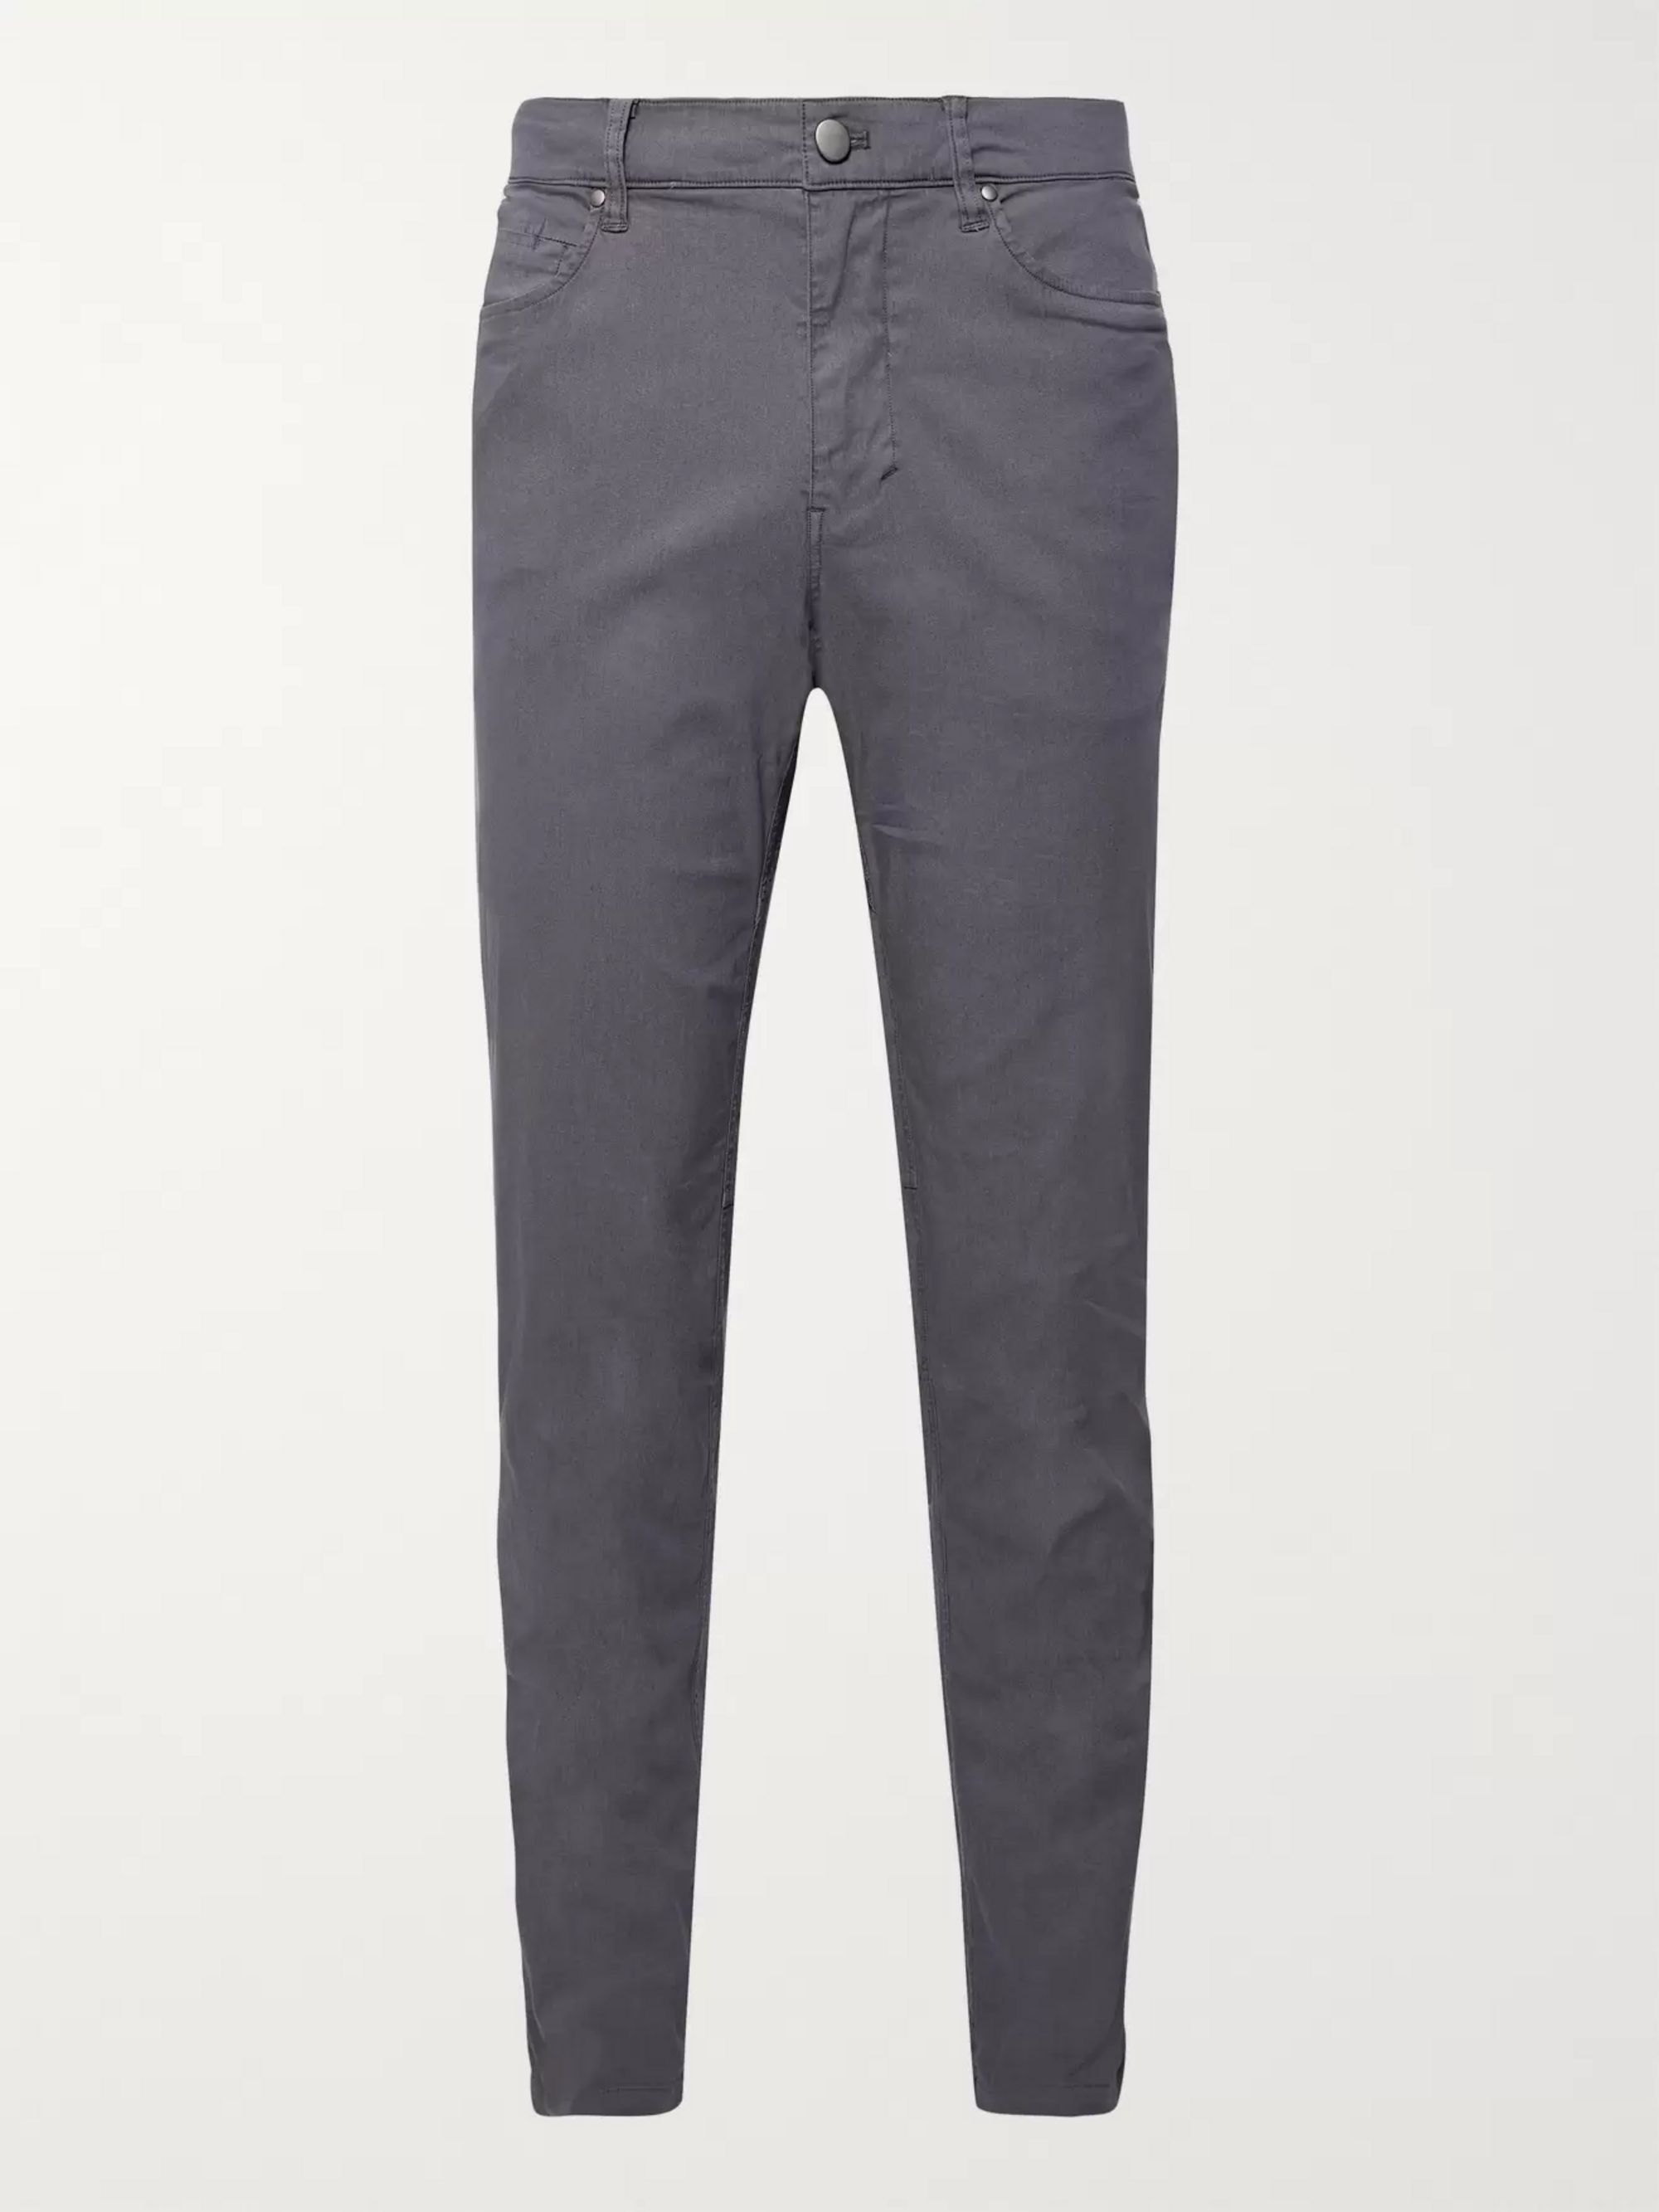 Lululemon ABC Slim-Fit Stretch Cotton-Blend Trousers